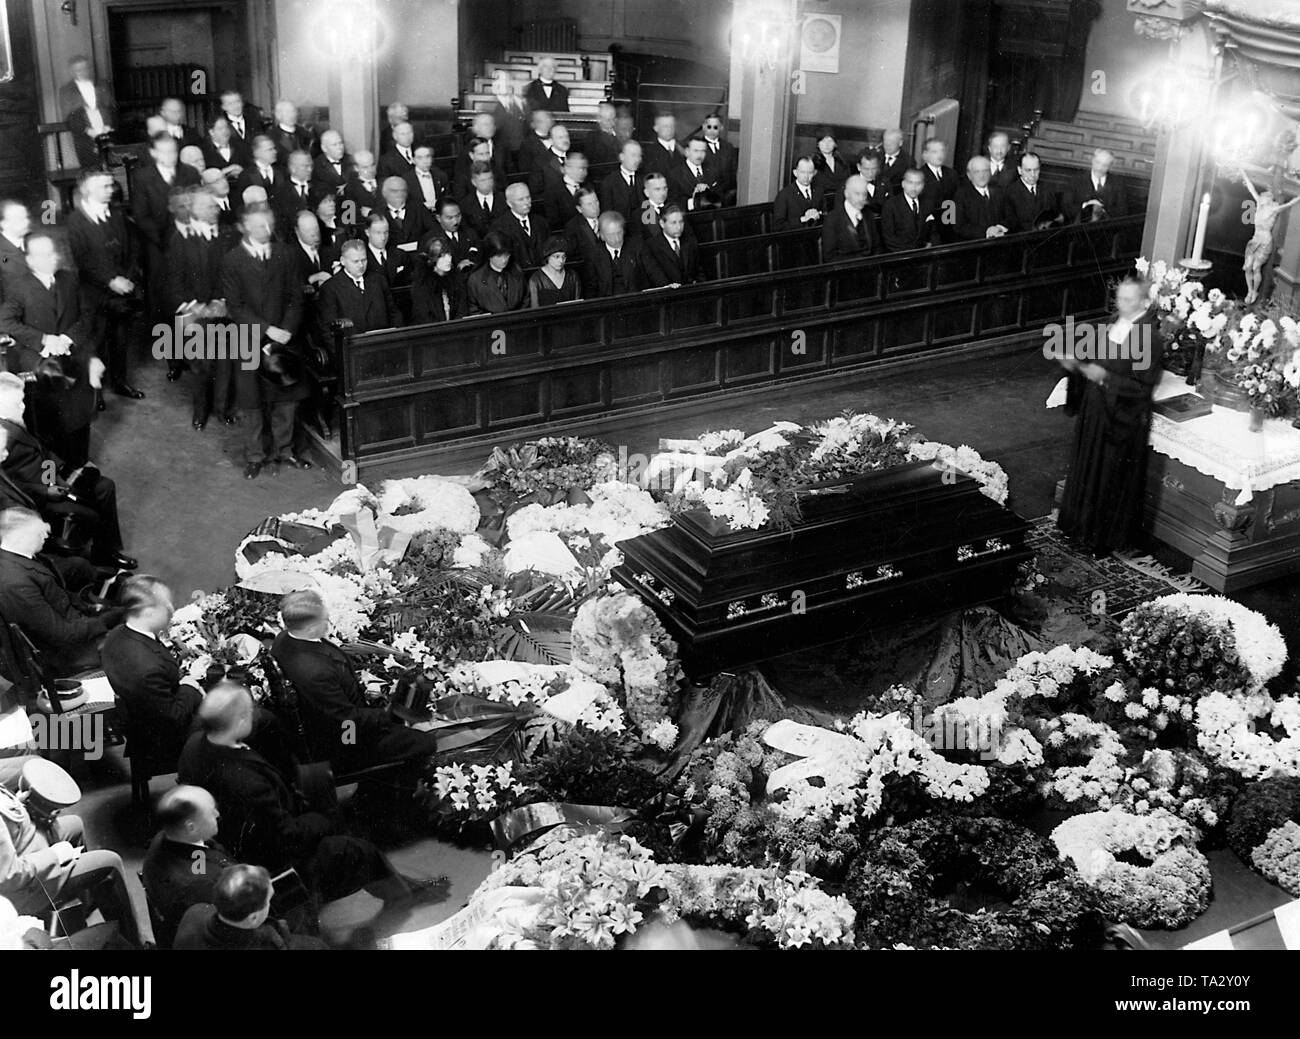 After von Brockdorff-Rantzau, German ambassador to Moscow, suddenly died from stroke in Berlin, a mourning ceremony took place a few days later in the Trinity Church in Berlin. Representatives of the diplomatic corps and state authorities were present. Front left, Secretary of State Otto Meissner. - Stock Image